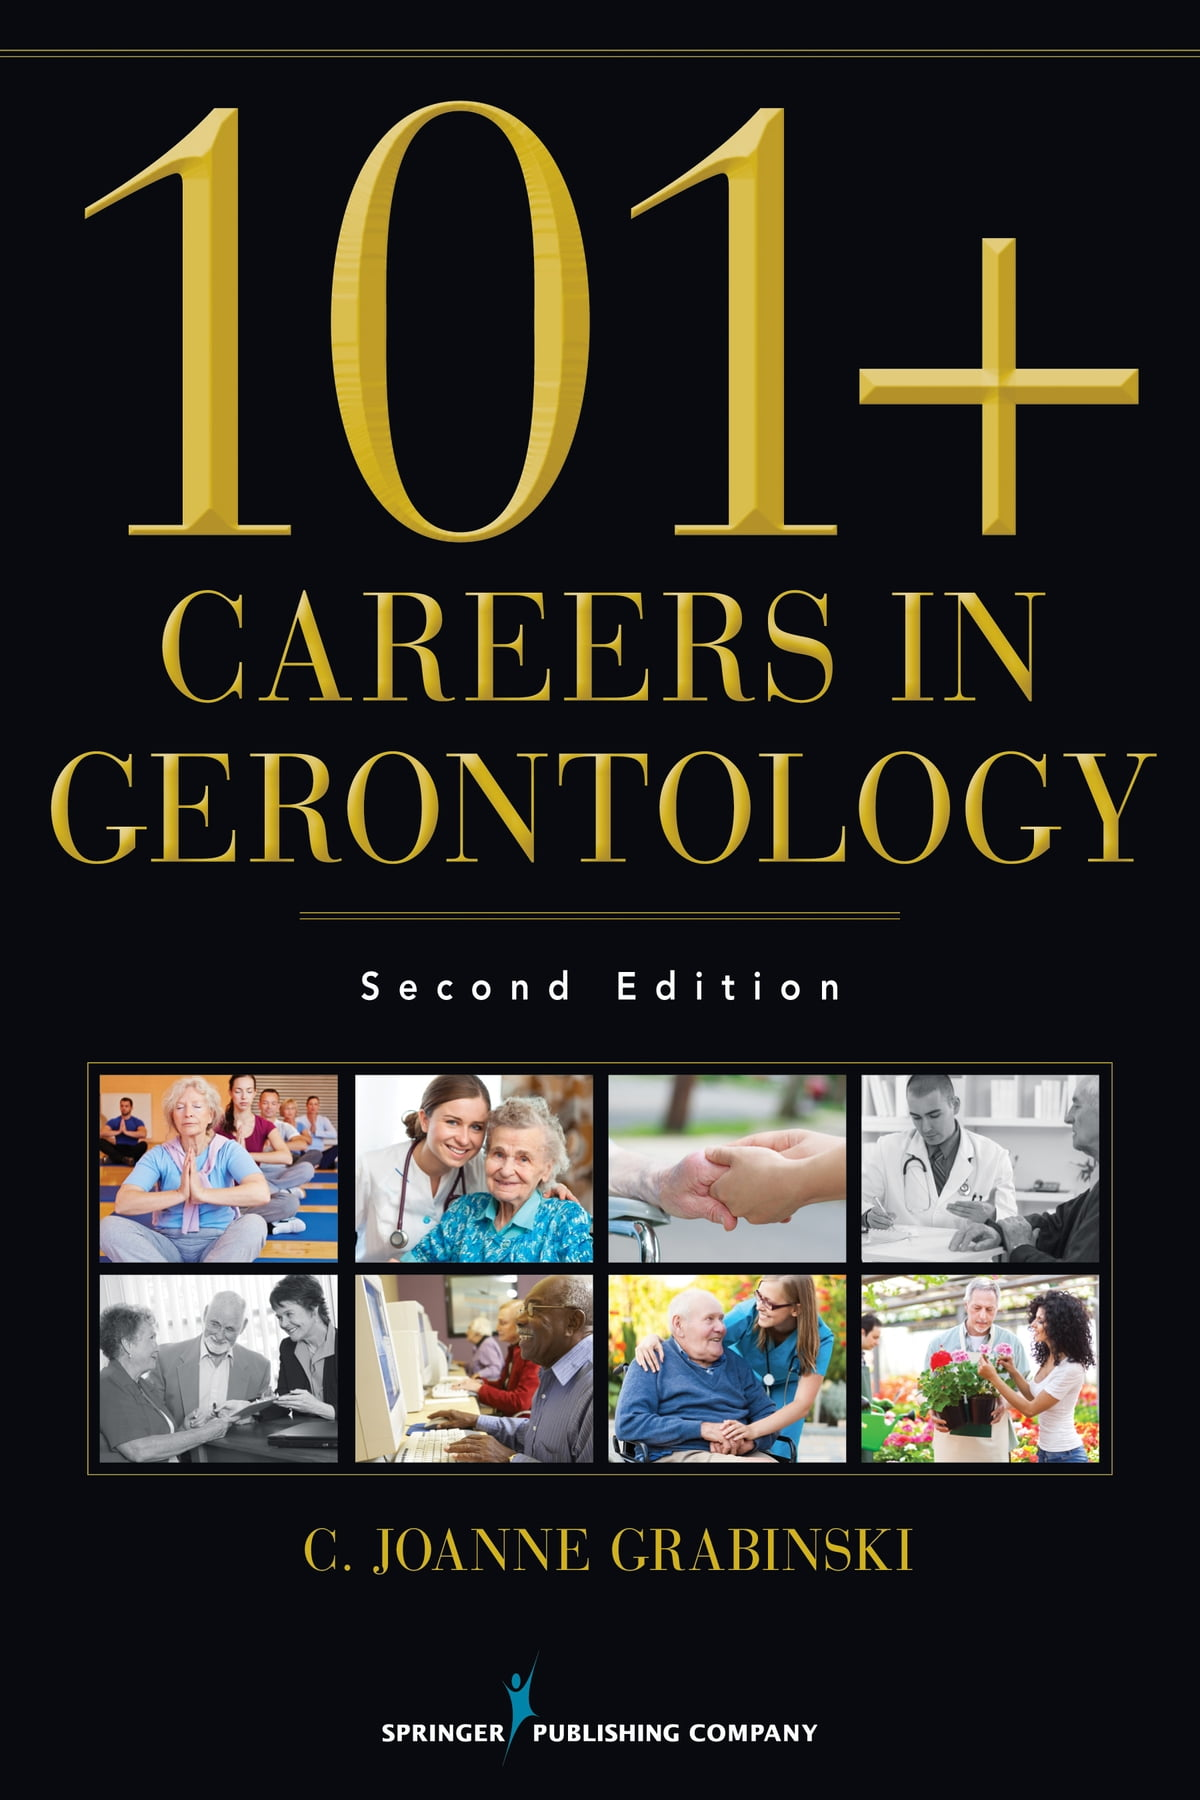 101+ Careers in Gerontology, Second Edition eBook by C. Joanne Grabinski,  MA, ABD, FAGHE - 9780826120090 | Rakuten Kobo